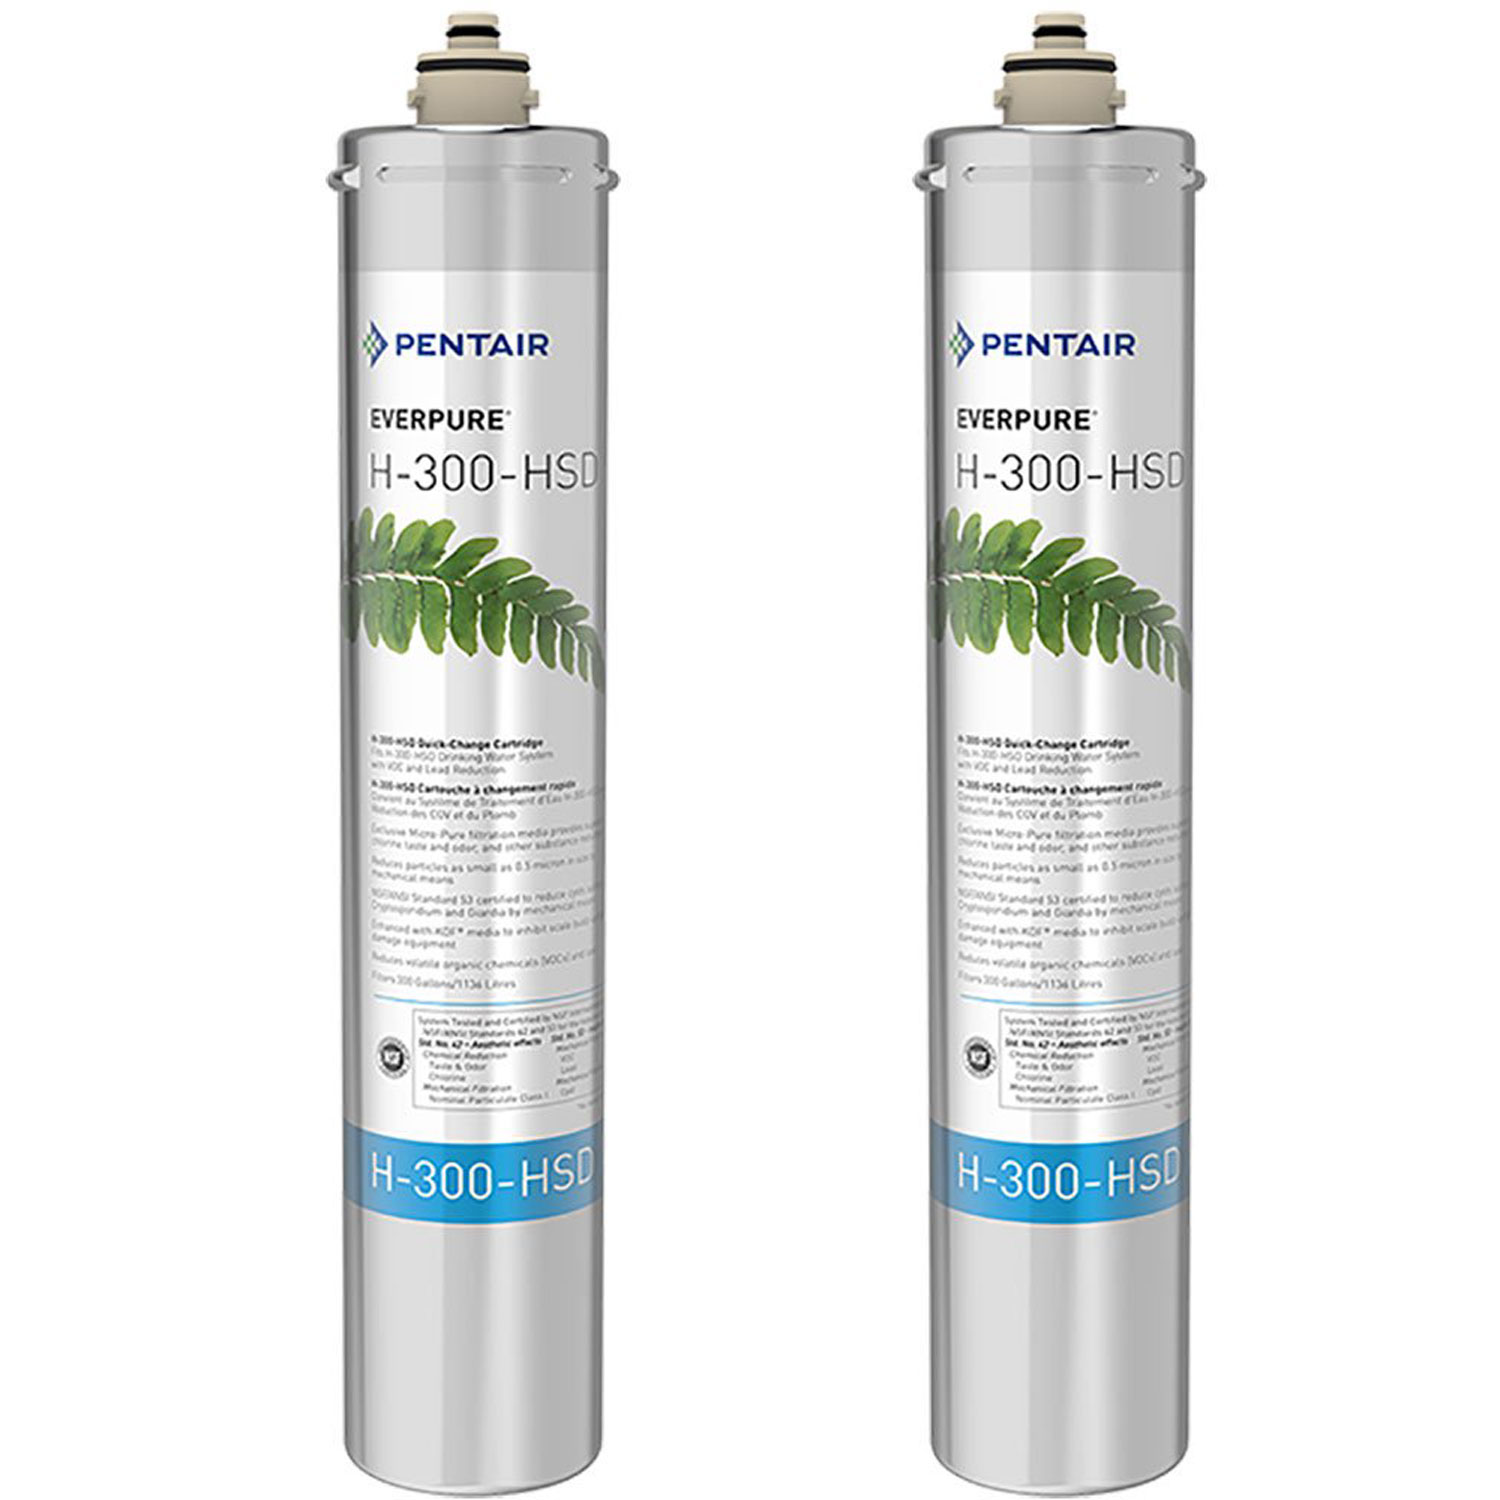 Pentair Everpure H-300-HSD Undersink Water Filter Replacement Cartridge (2 Pack)